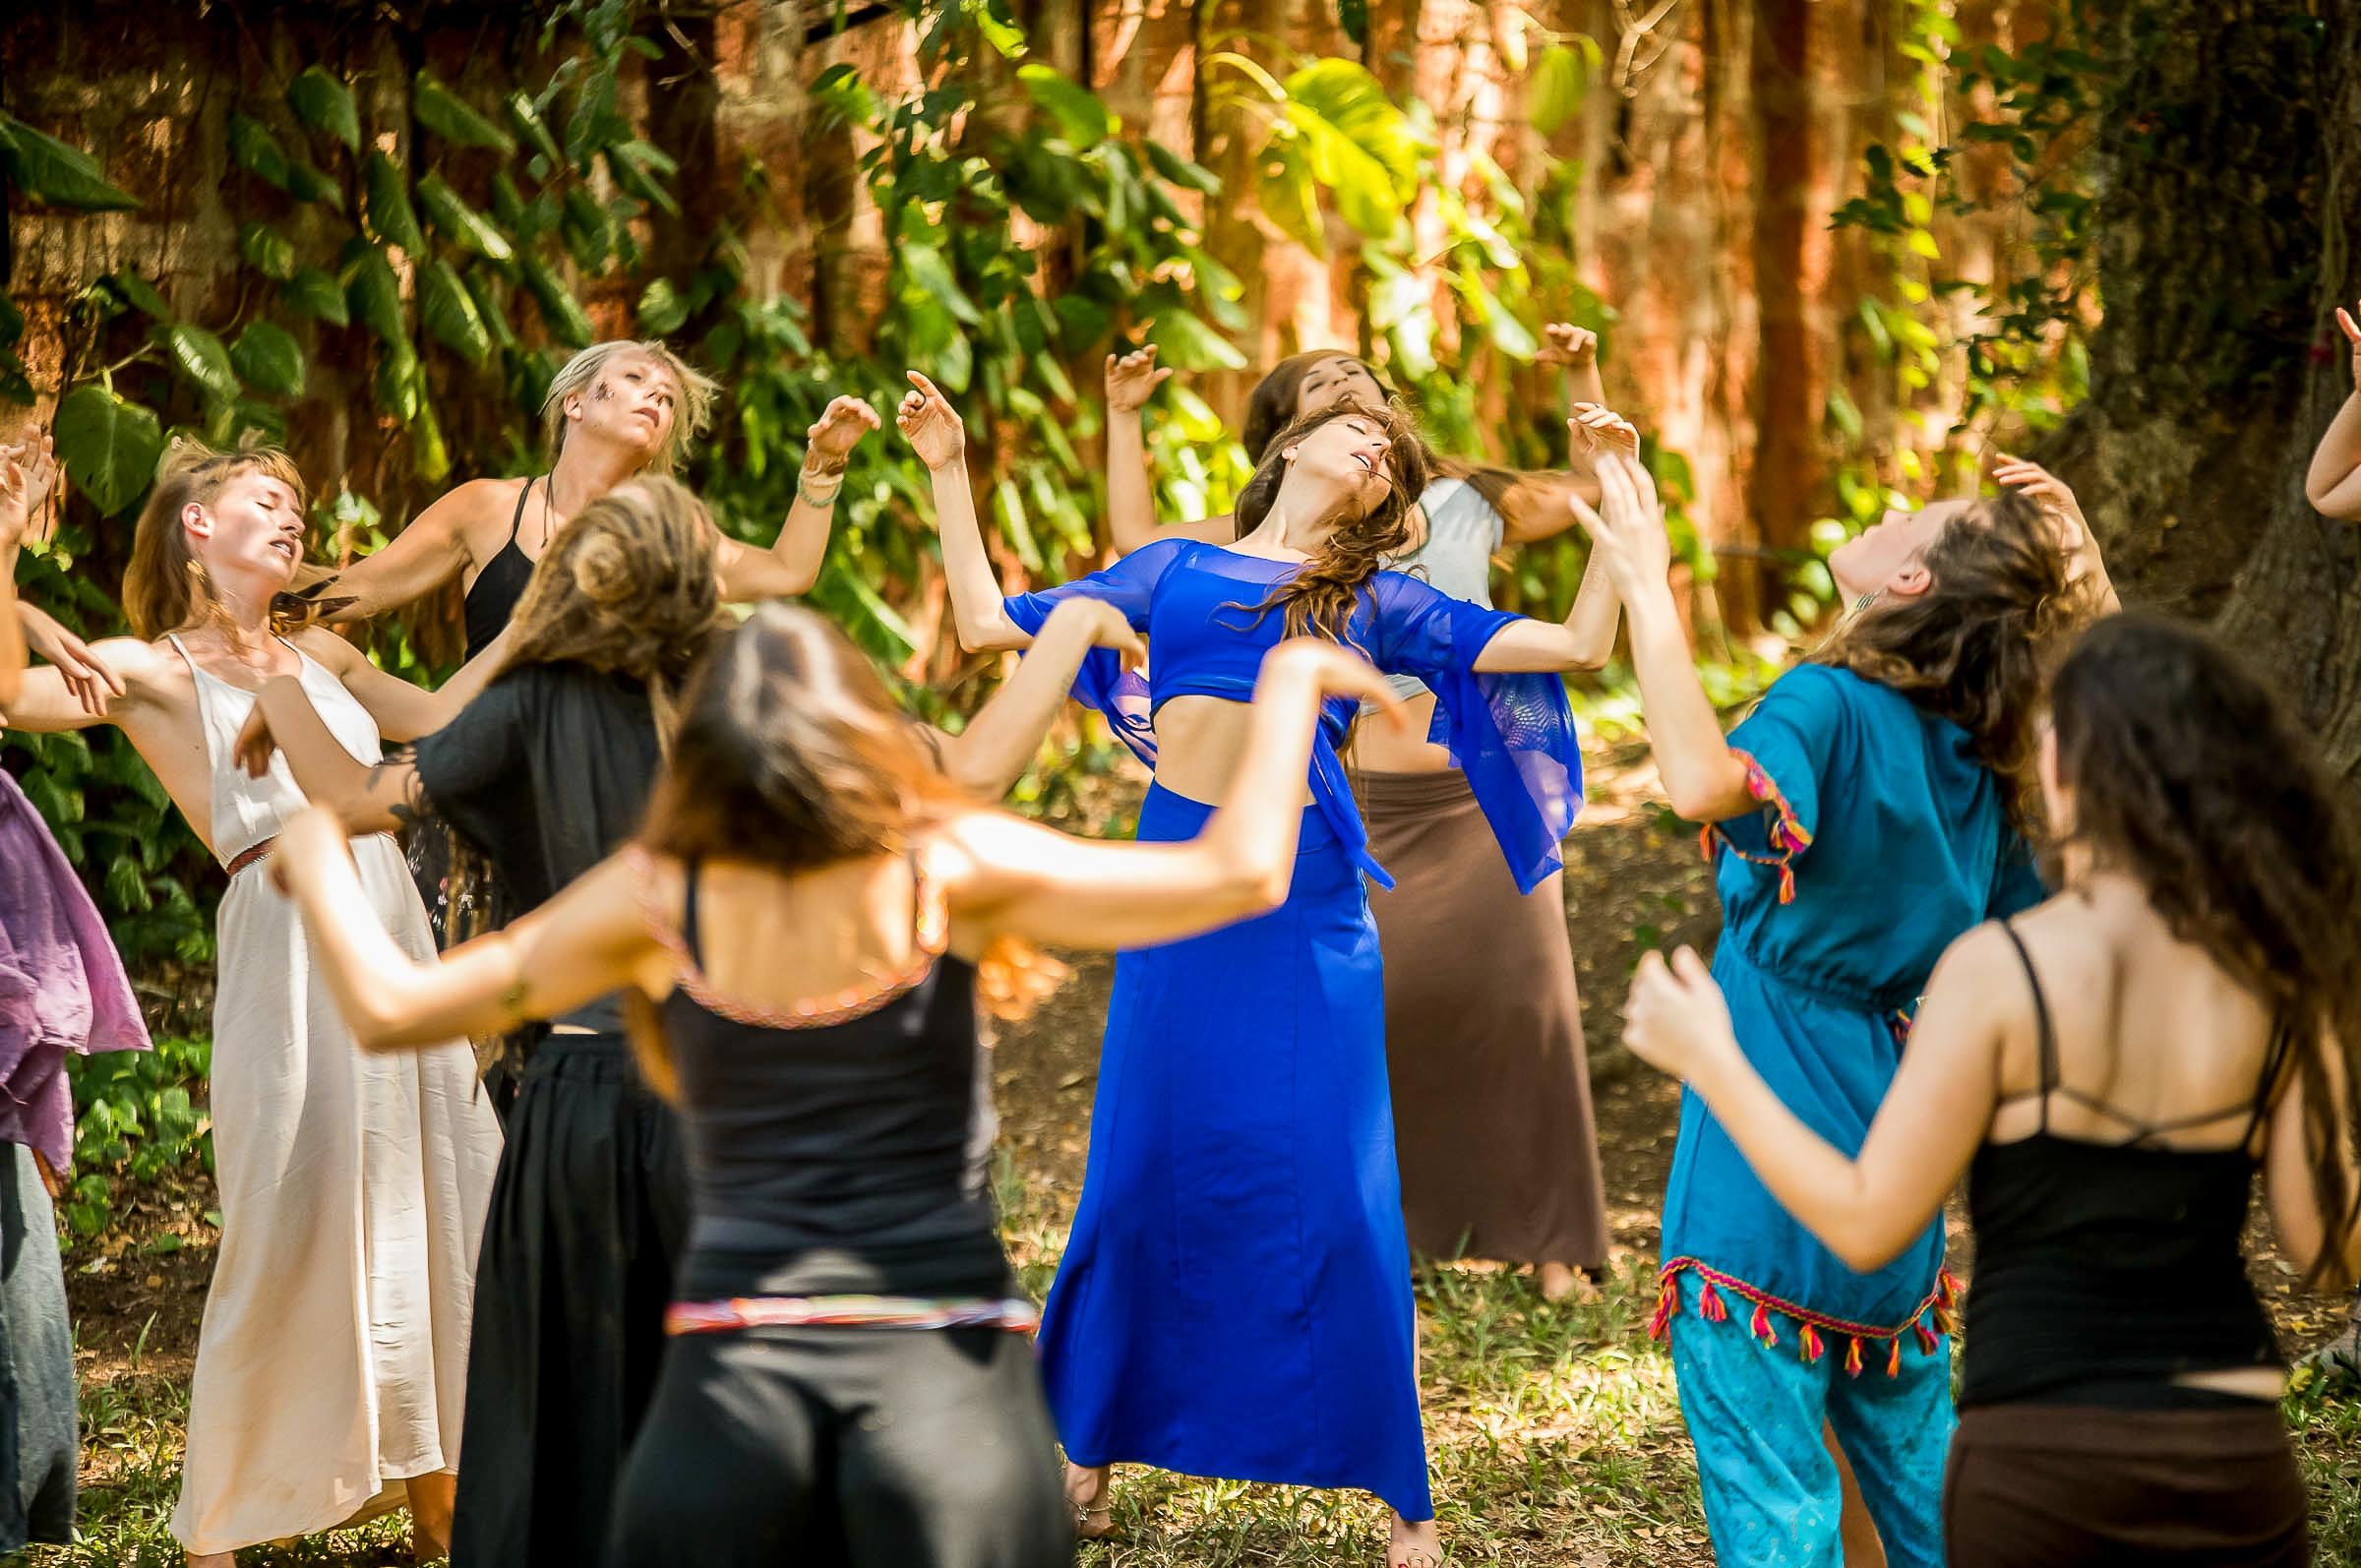 Dance & Yoga Intense Workshop Retreat with Zola Dubnikova  in India captured by the International Portrait Photographer - Magdalena Smolarska Photography based in UK